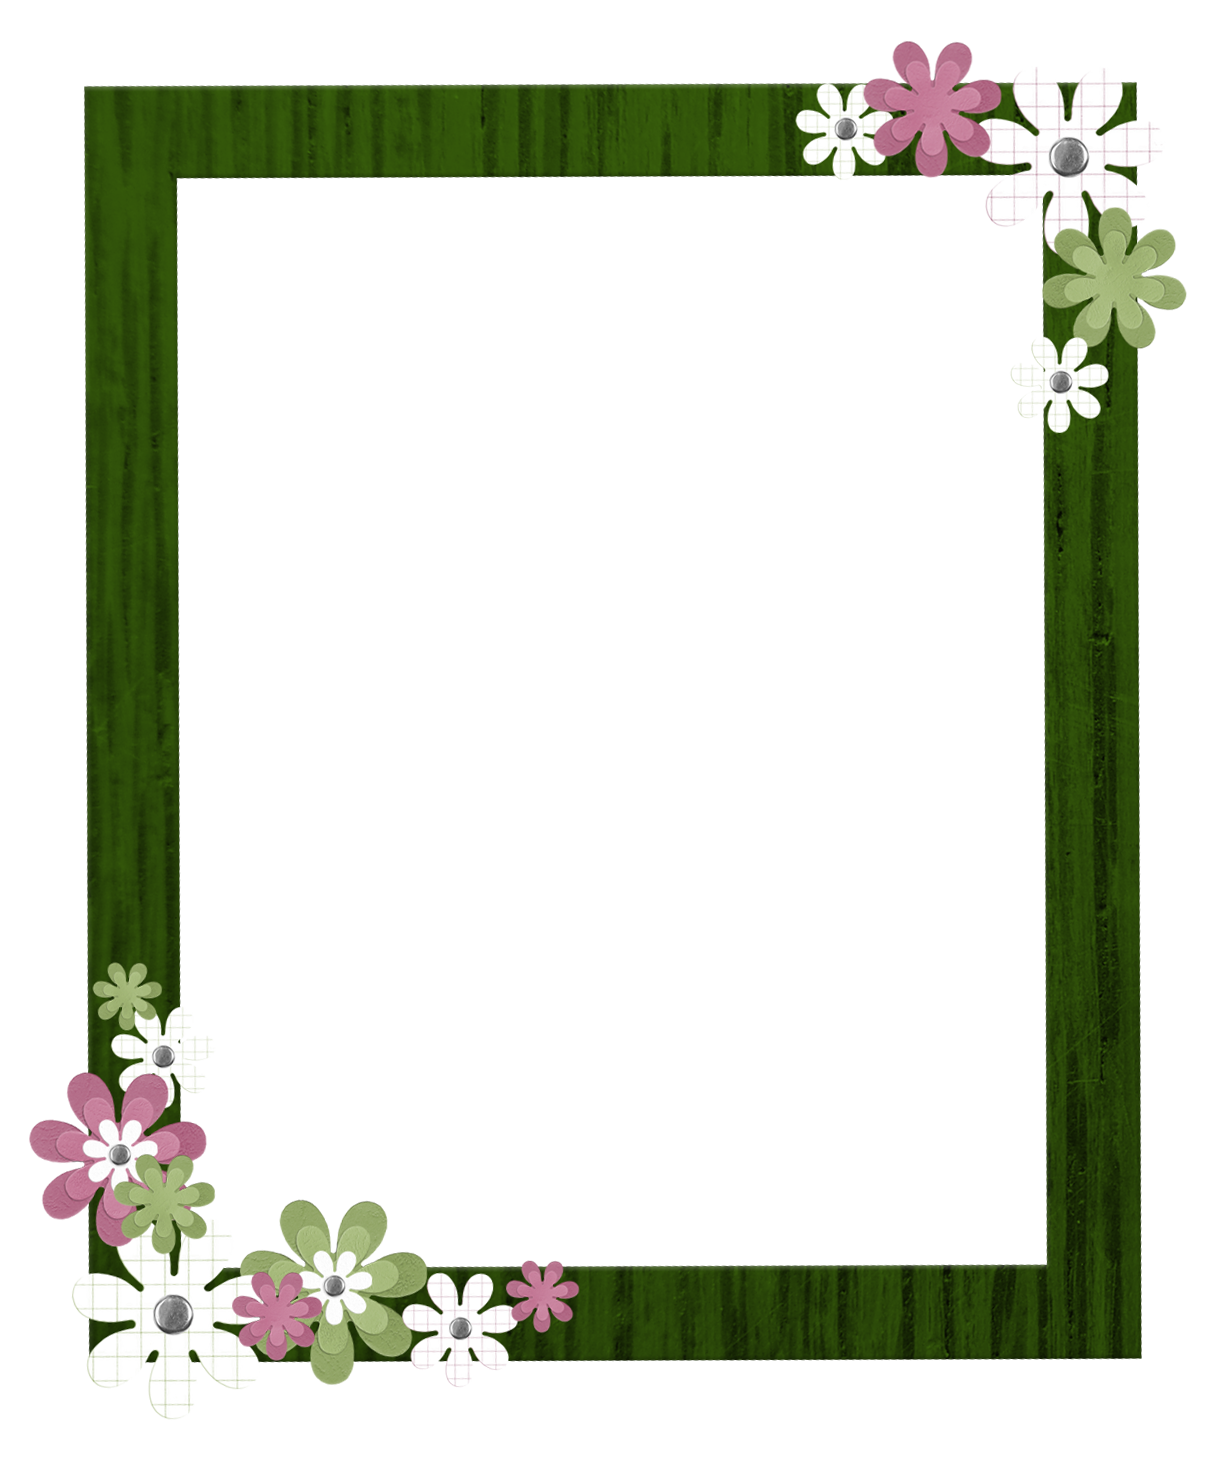 jpg royalty free Clipart borders and frame. Green border png mart.